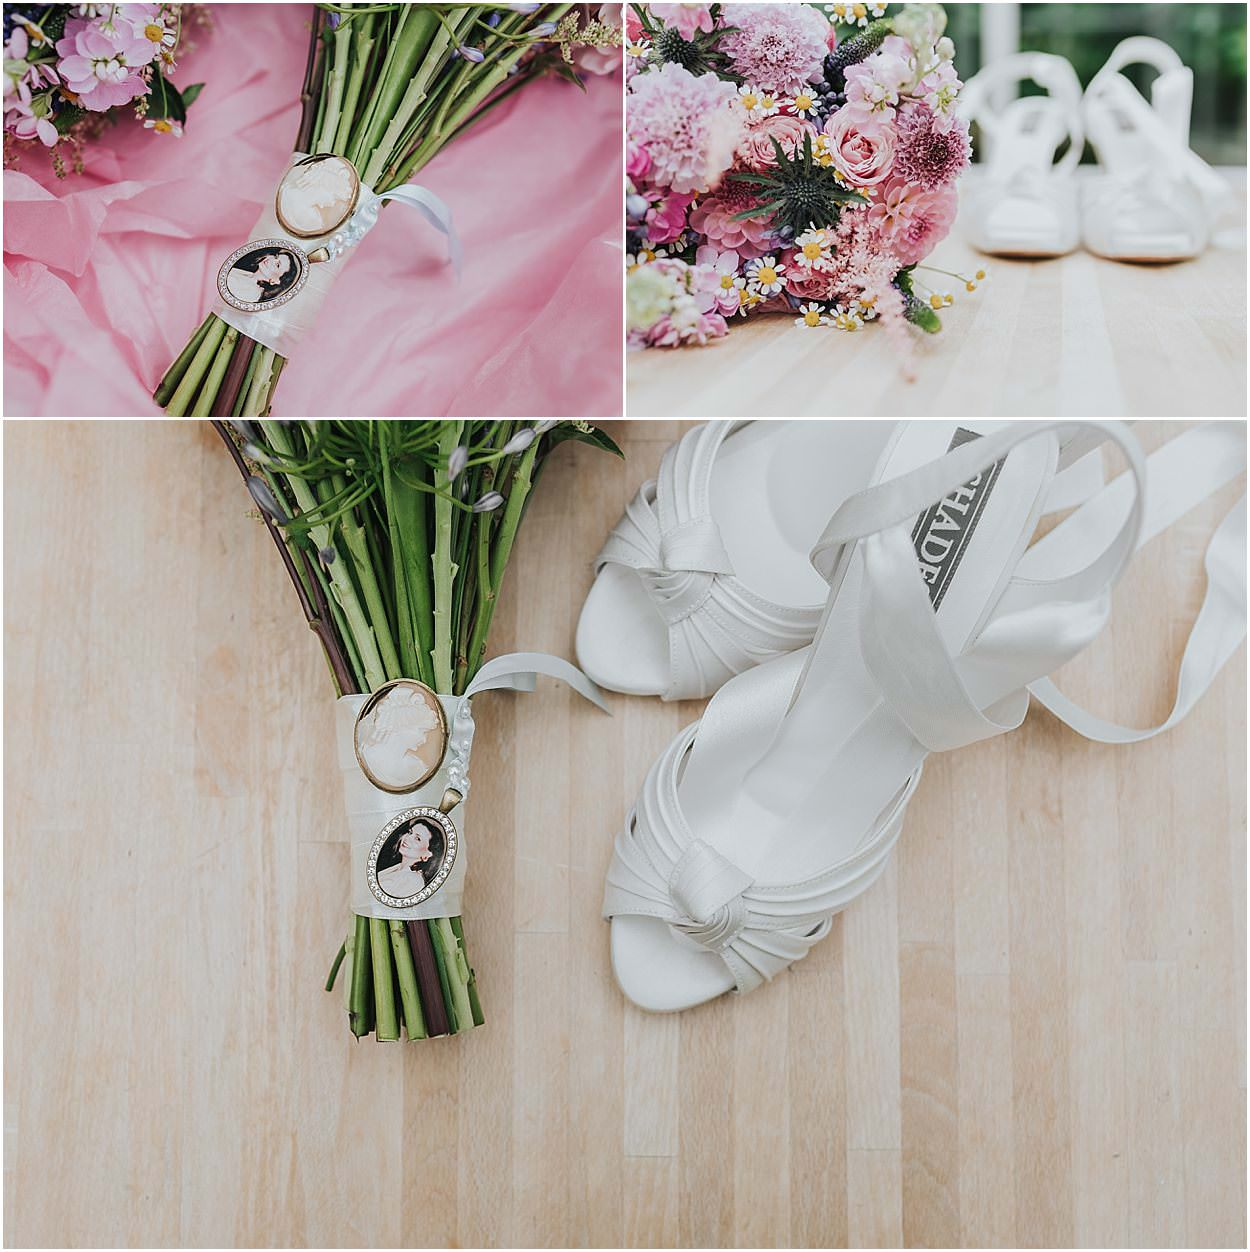 Lincolnshire photography top left portrait of bride's mother on bridal bouquet, top right bridal bouquet with shoes in background, bottom, bridal bouquet and bridal shoes